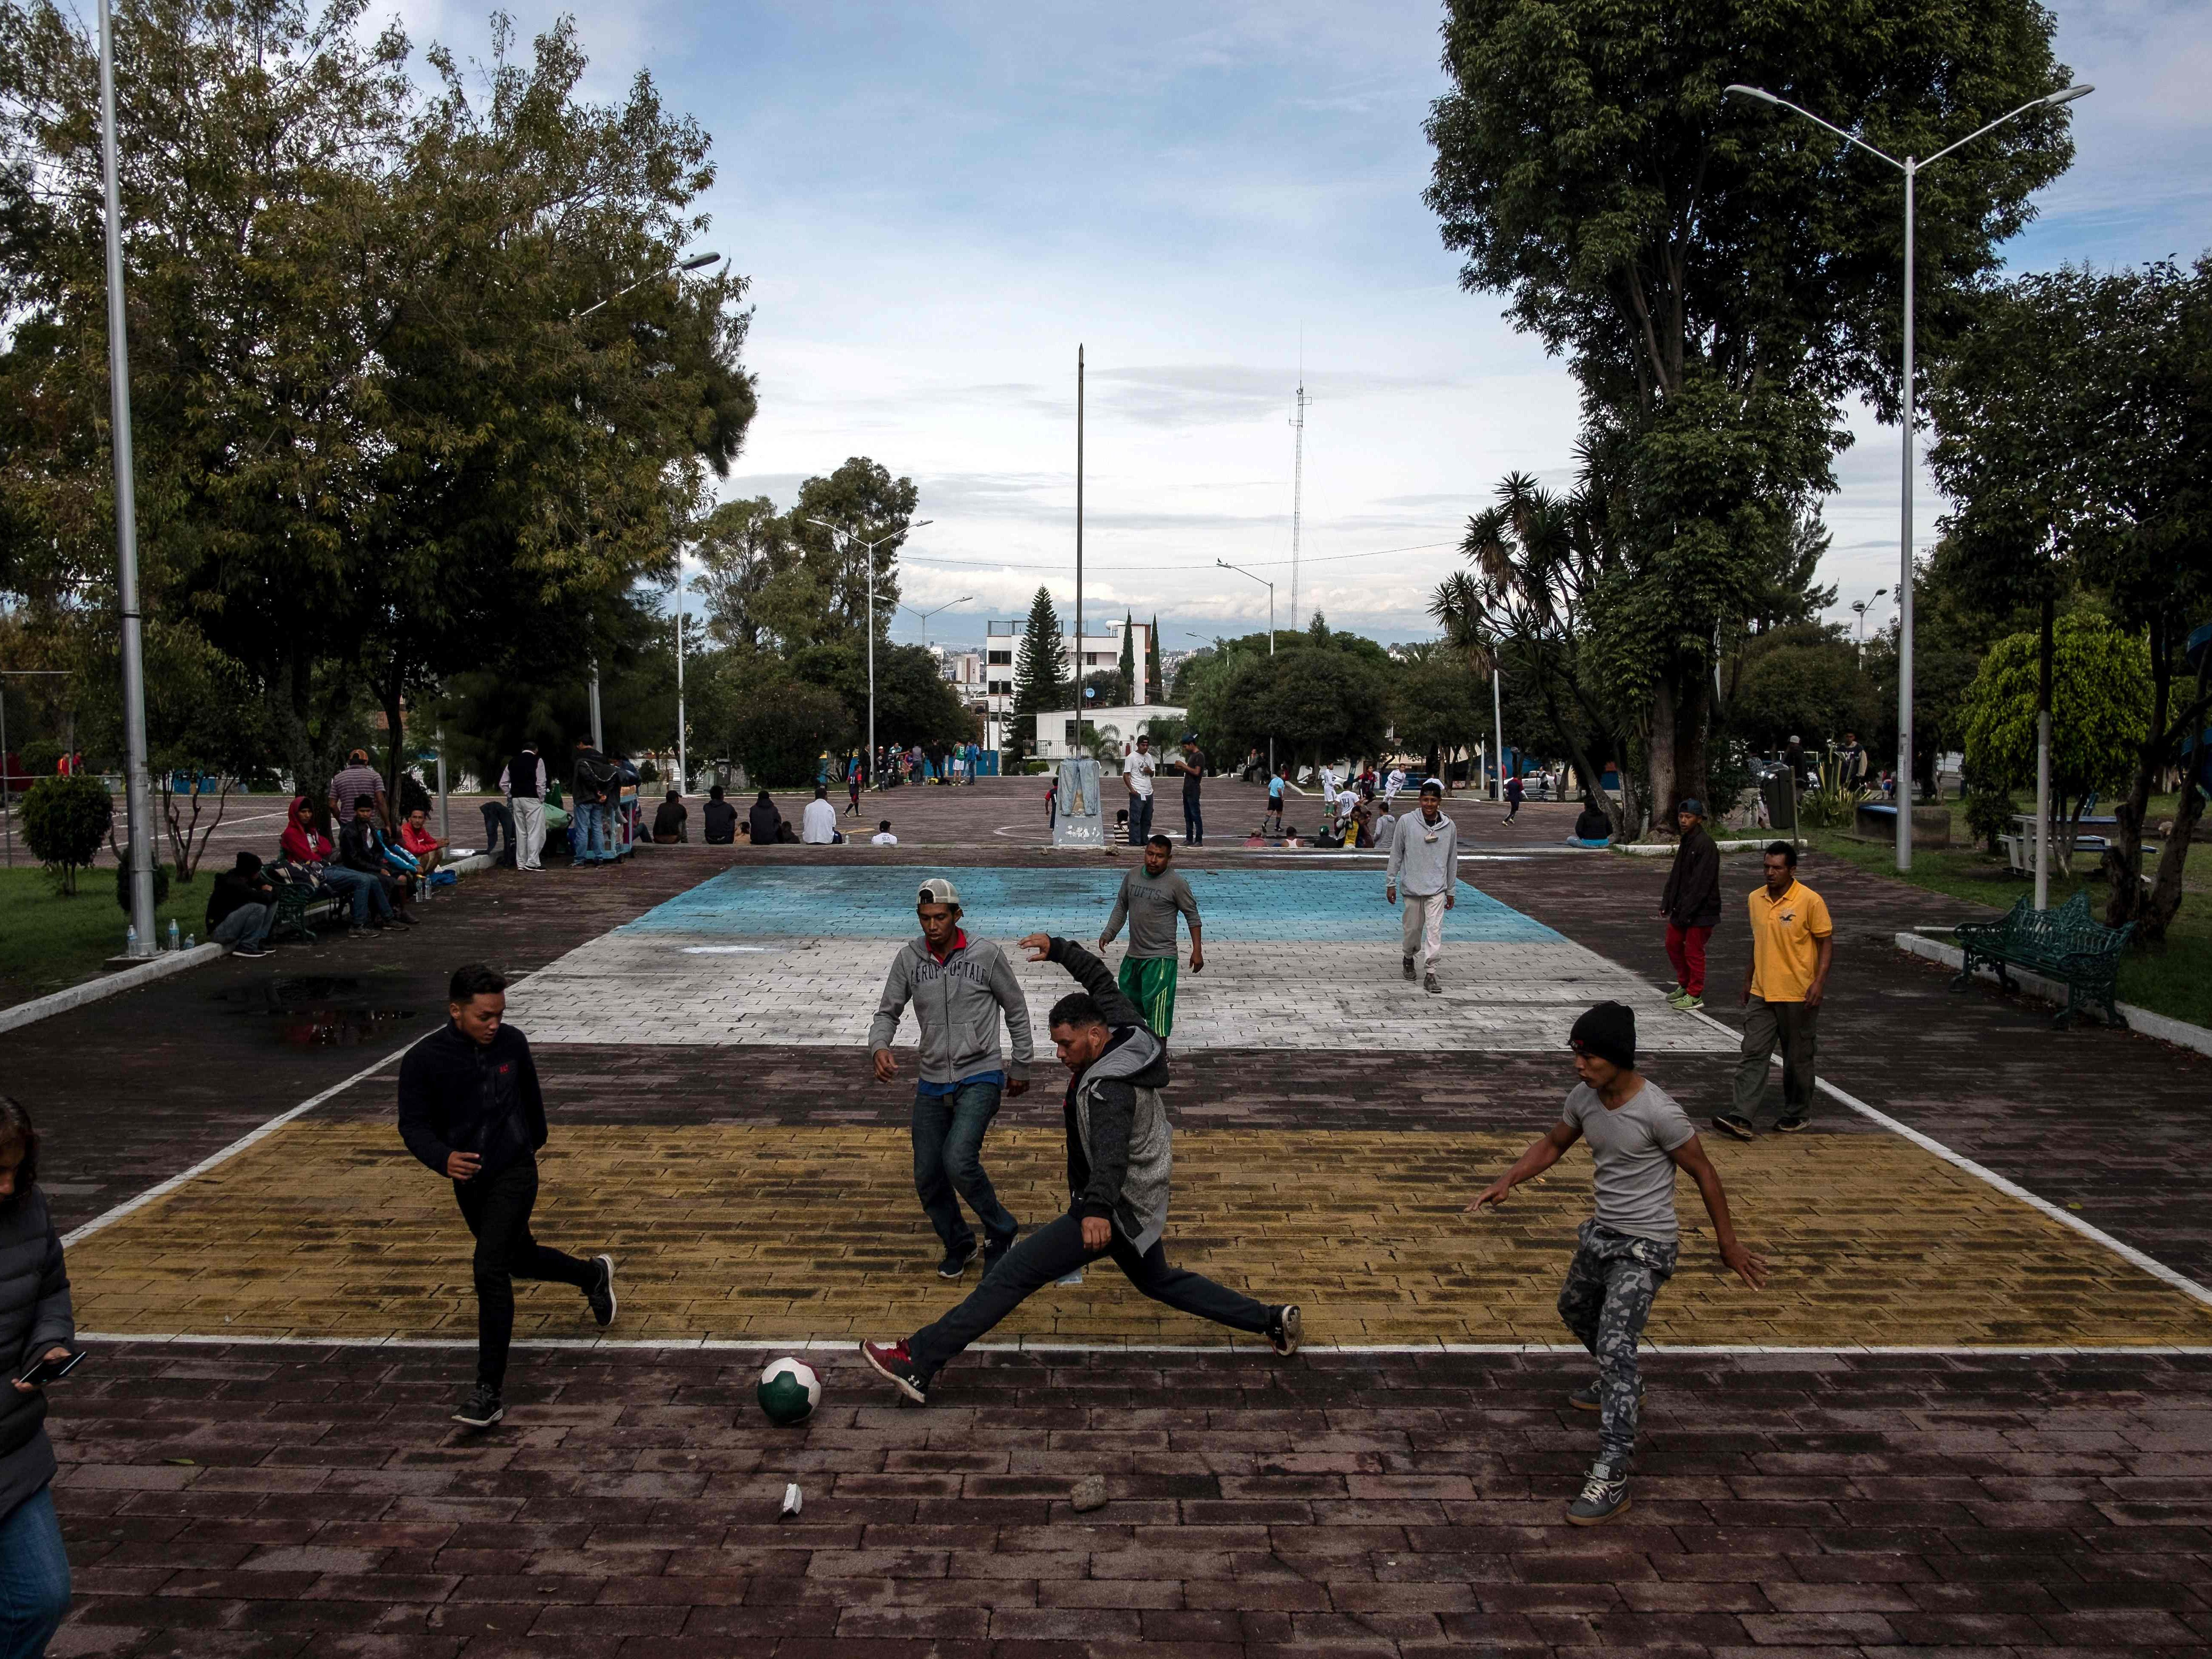 Migrants taking part in a caravan heading to the U.S., play at a park outside at the Asuncion temple in Puebla, Puebla state, Mexico, on Nov. 4, 2018.